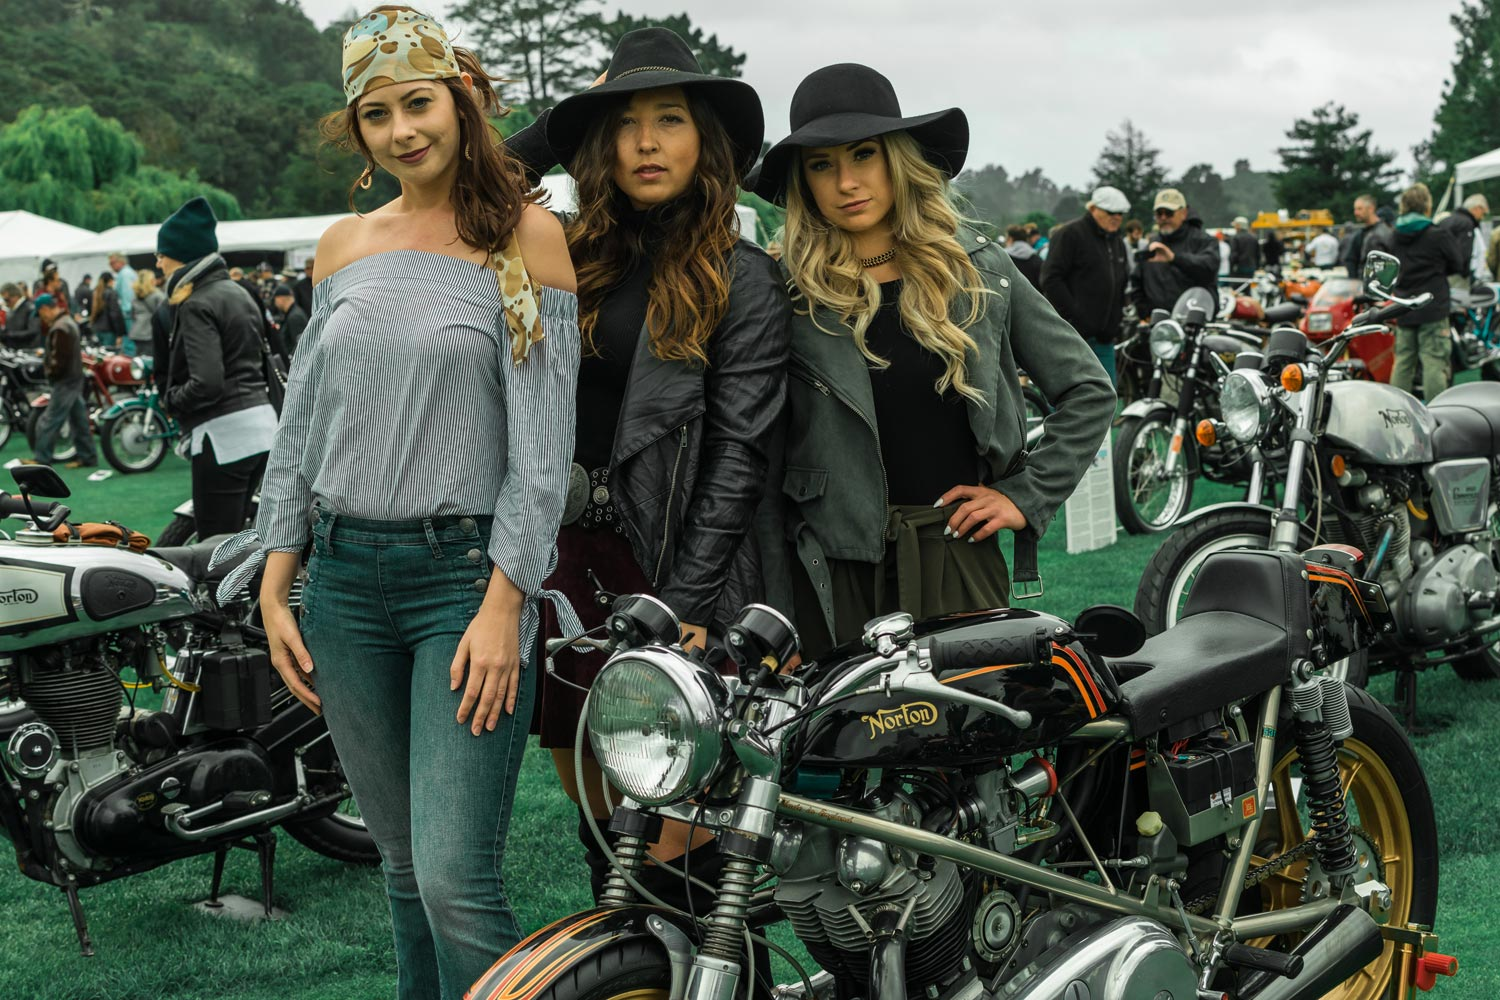 Quail Motorcycle Gathering Introduces New Classes and More for 2018